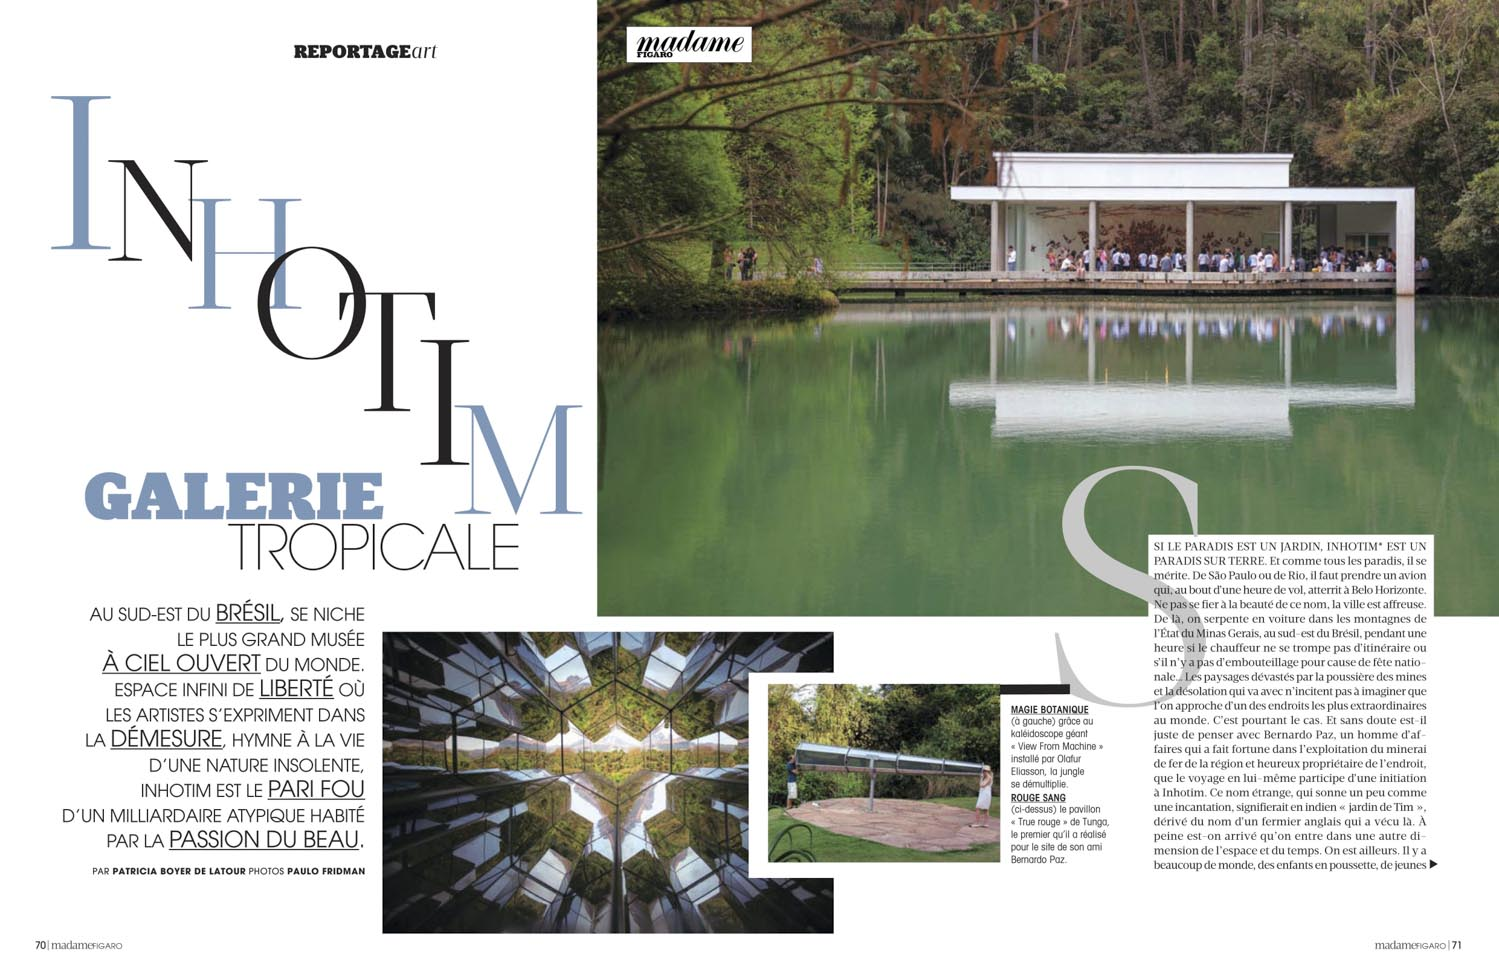 Madame Figaro, France, reportage on INHOTIM Contemporary Art center.